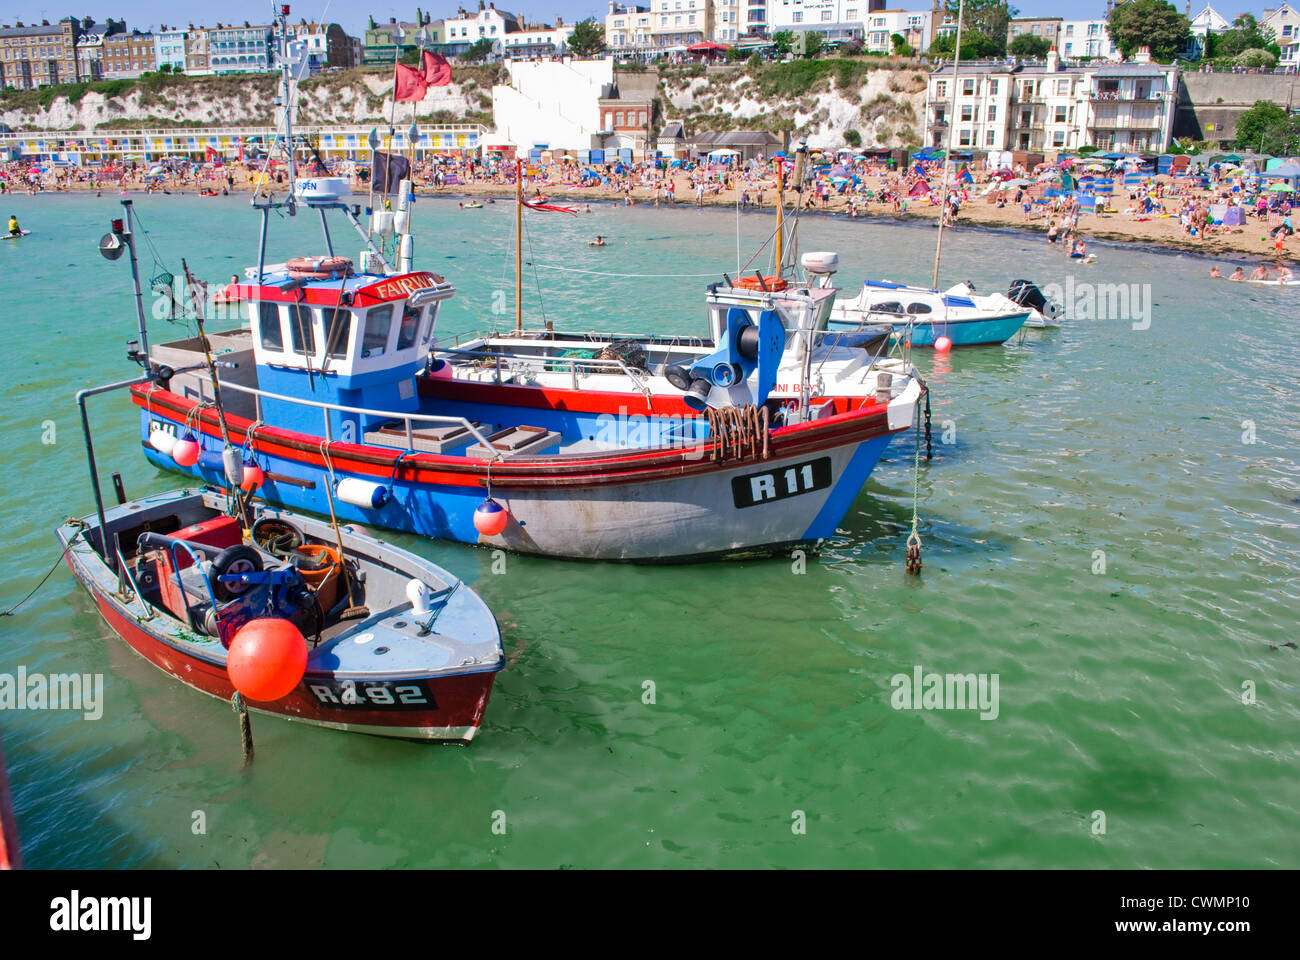 Boats docked in Broadstairs, Kent. Kent is also known as the garden of England. - Stock Image